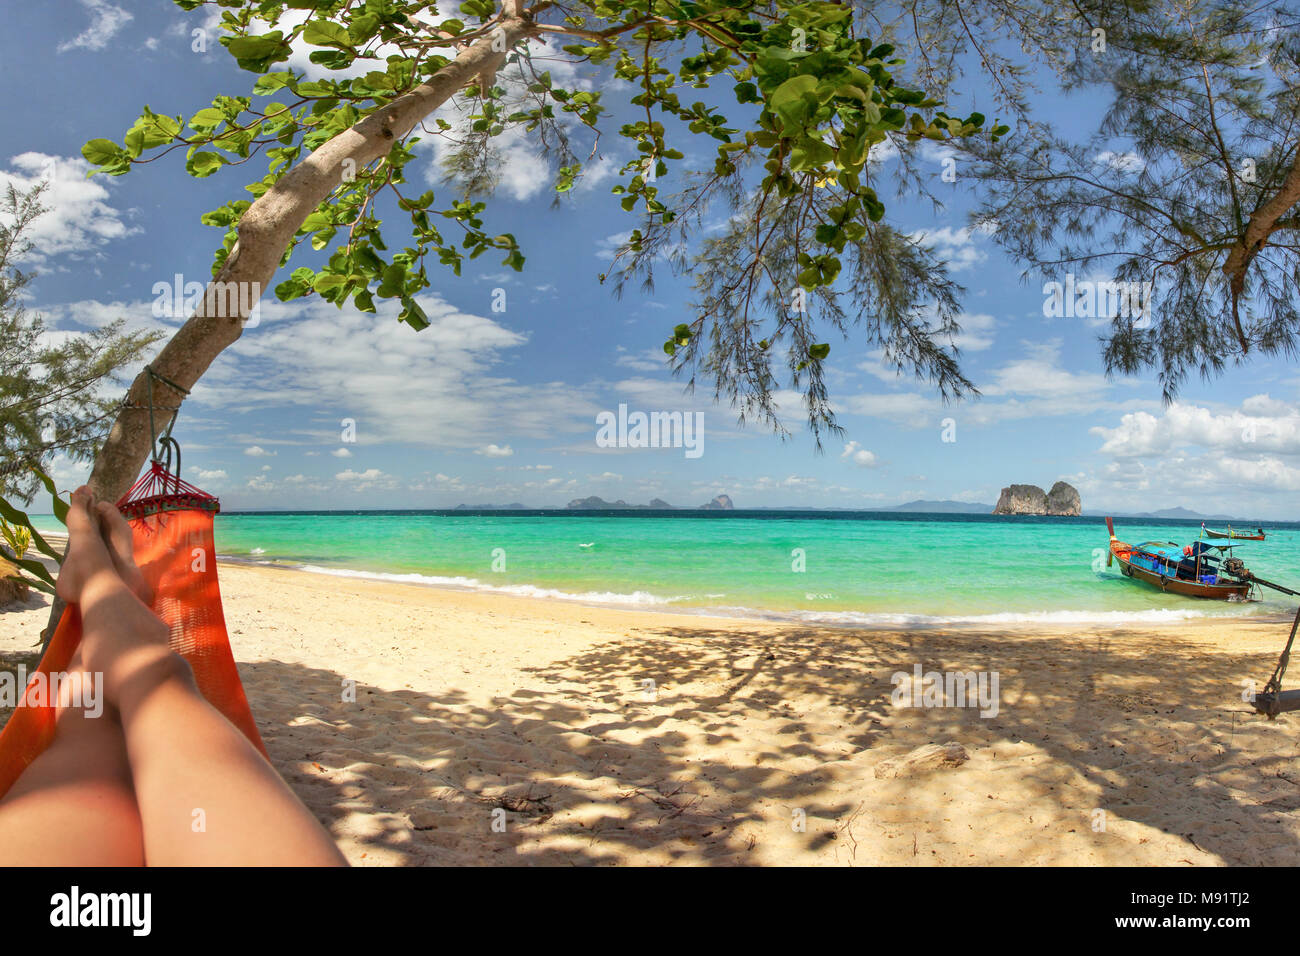 Legs of man laying in red hammock in tree shade with fine sand beach below and view to postcard perfect aquamarine color sea ad little islands in dist - Stock Image